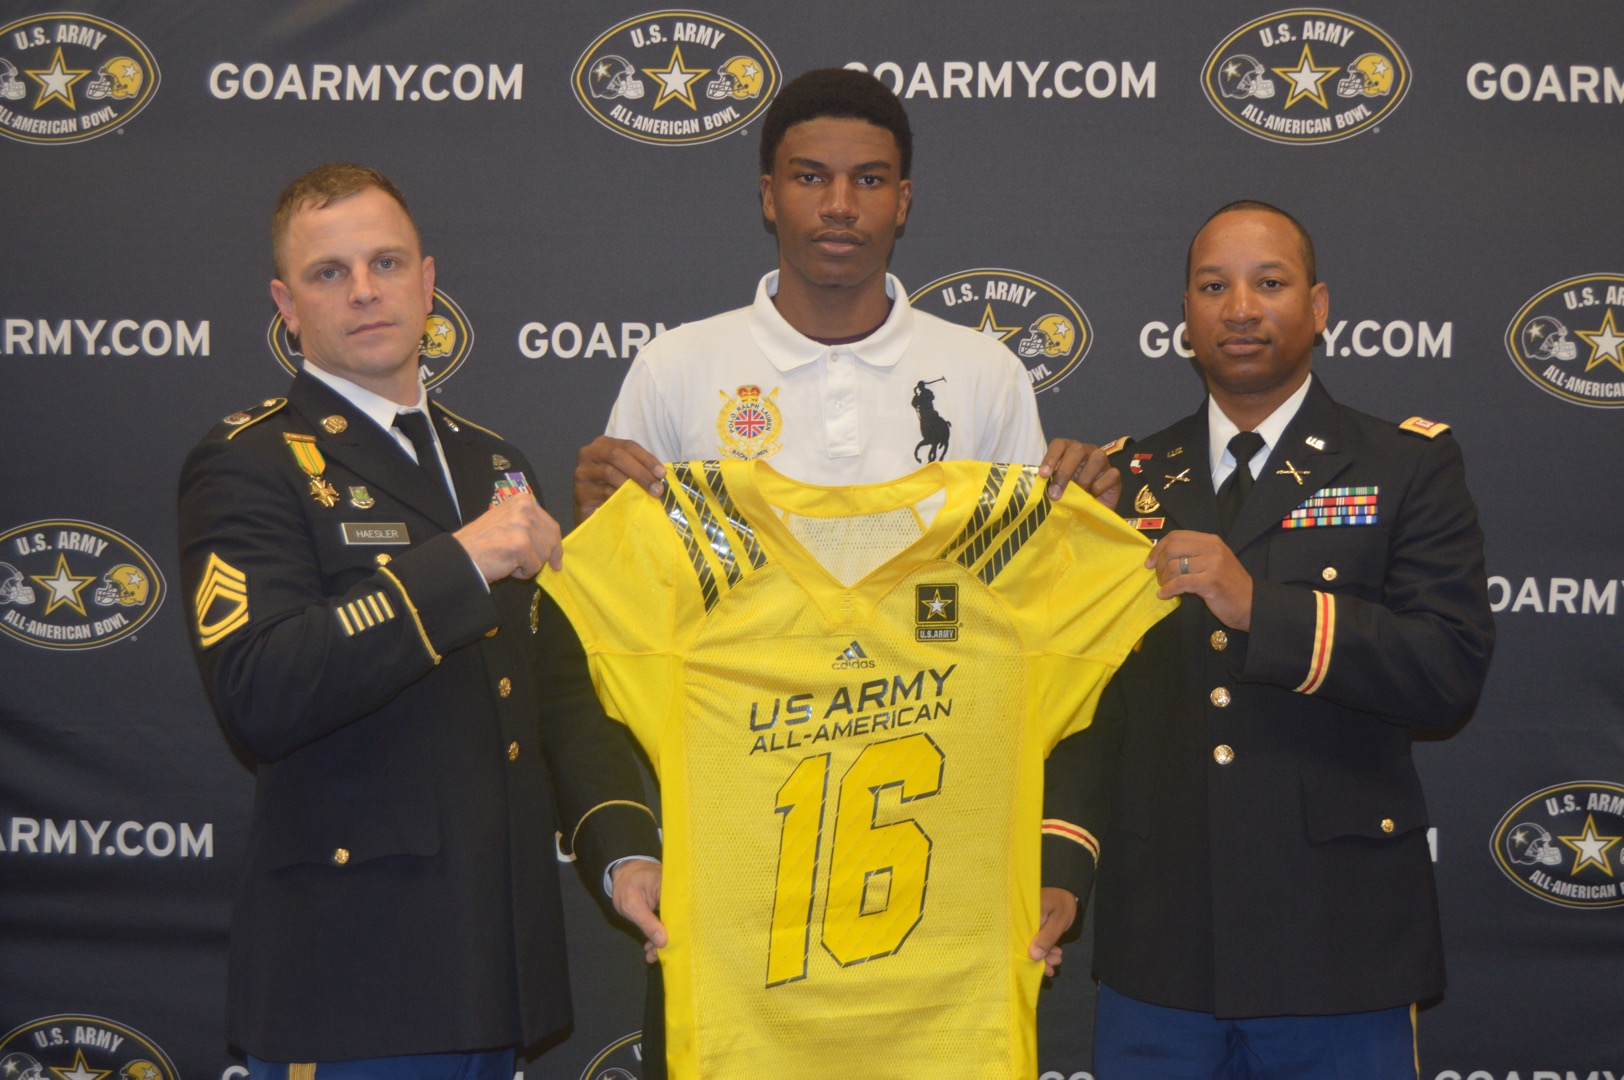 Charles Oliver receives his Army All-American Bowl jersey from Sergeant First Class Steven Haesller (left) and Captain Francis Santana. (Photo: U.S. Army All-American Bowl)